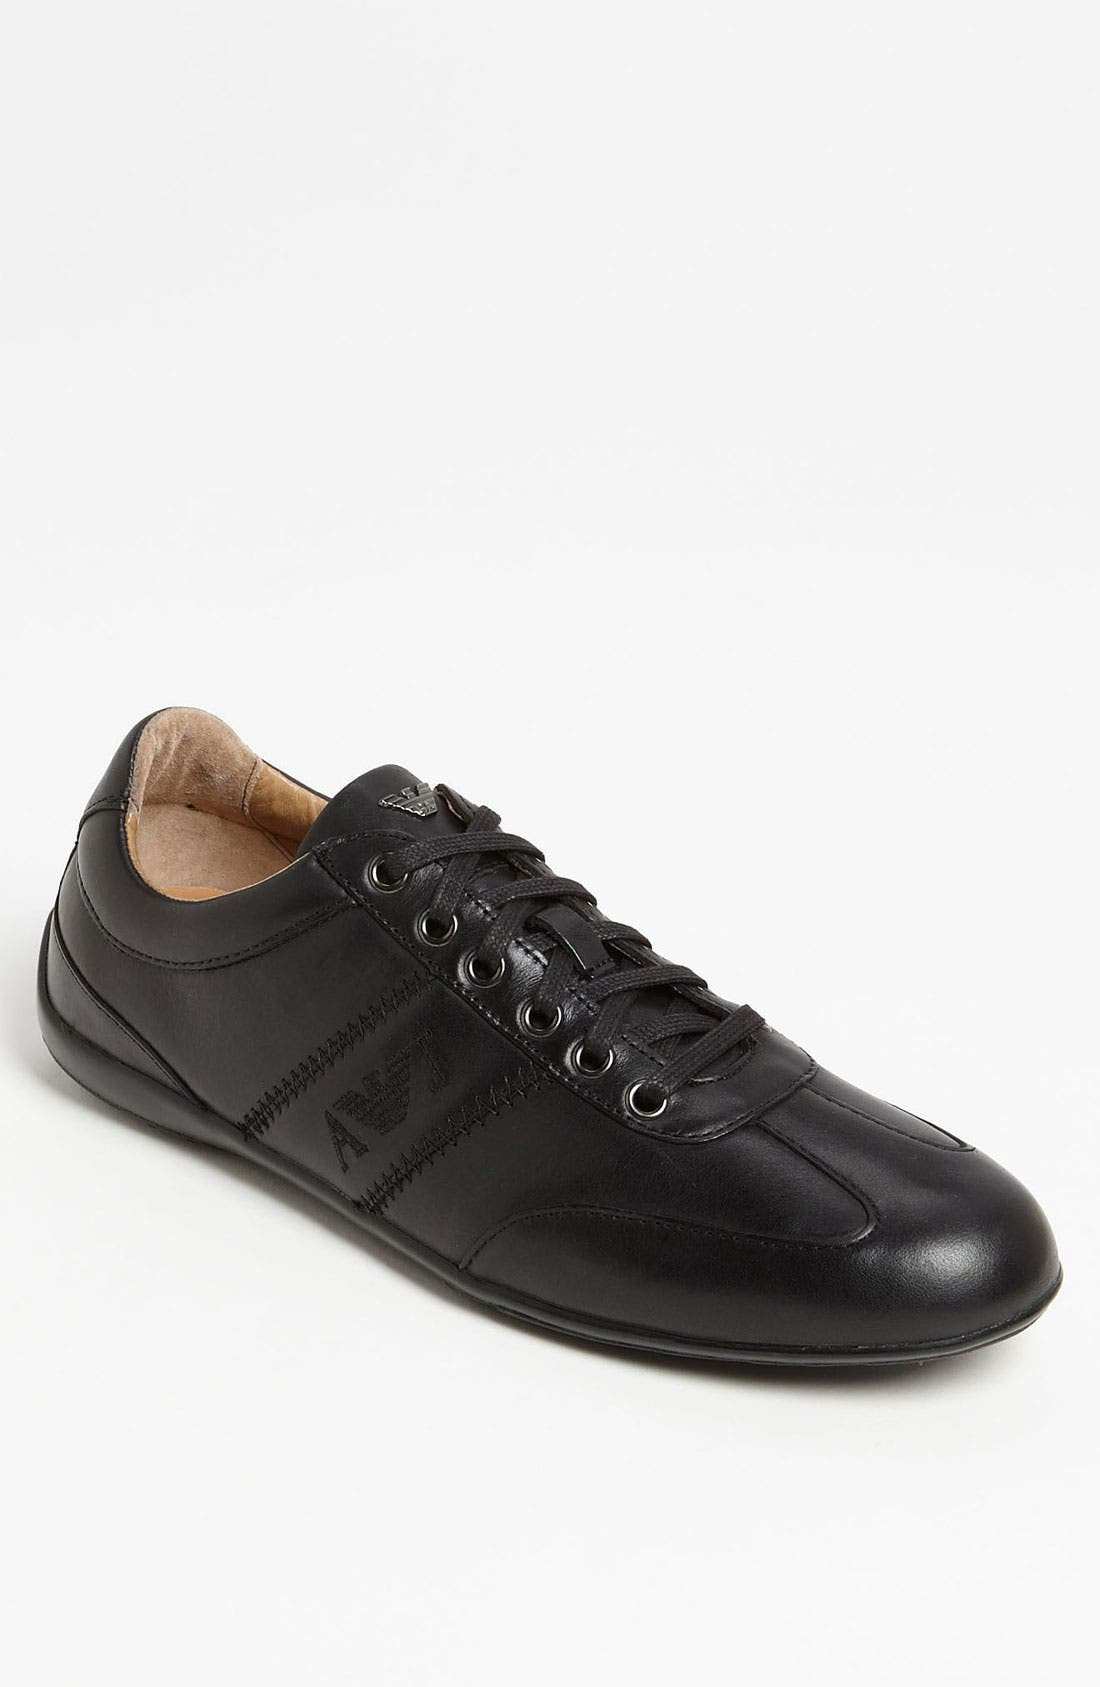 Main Image - Armani Jeans Leather Sneaker